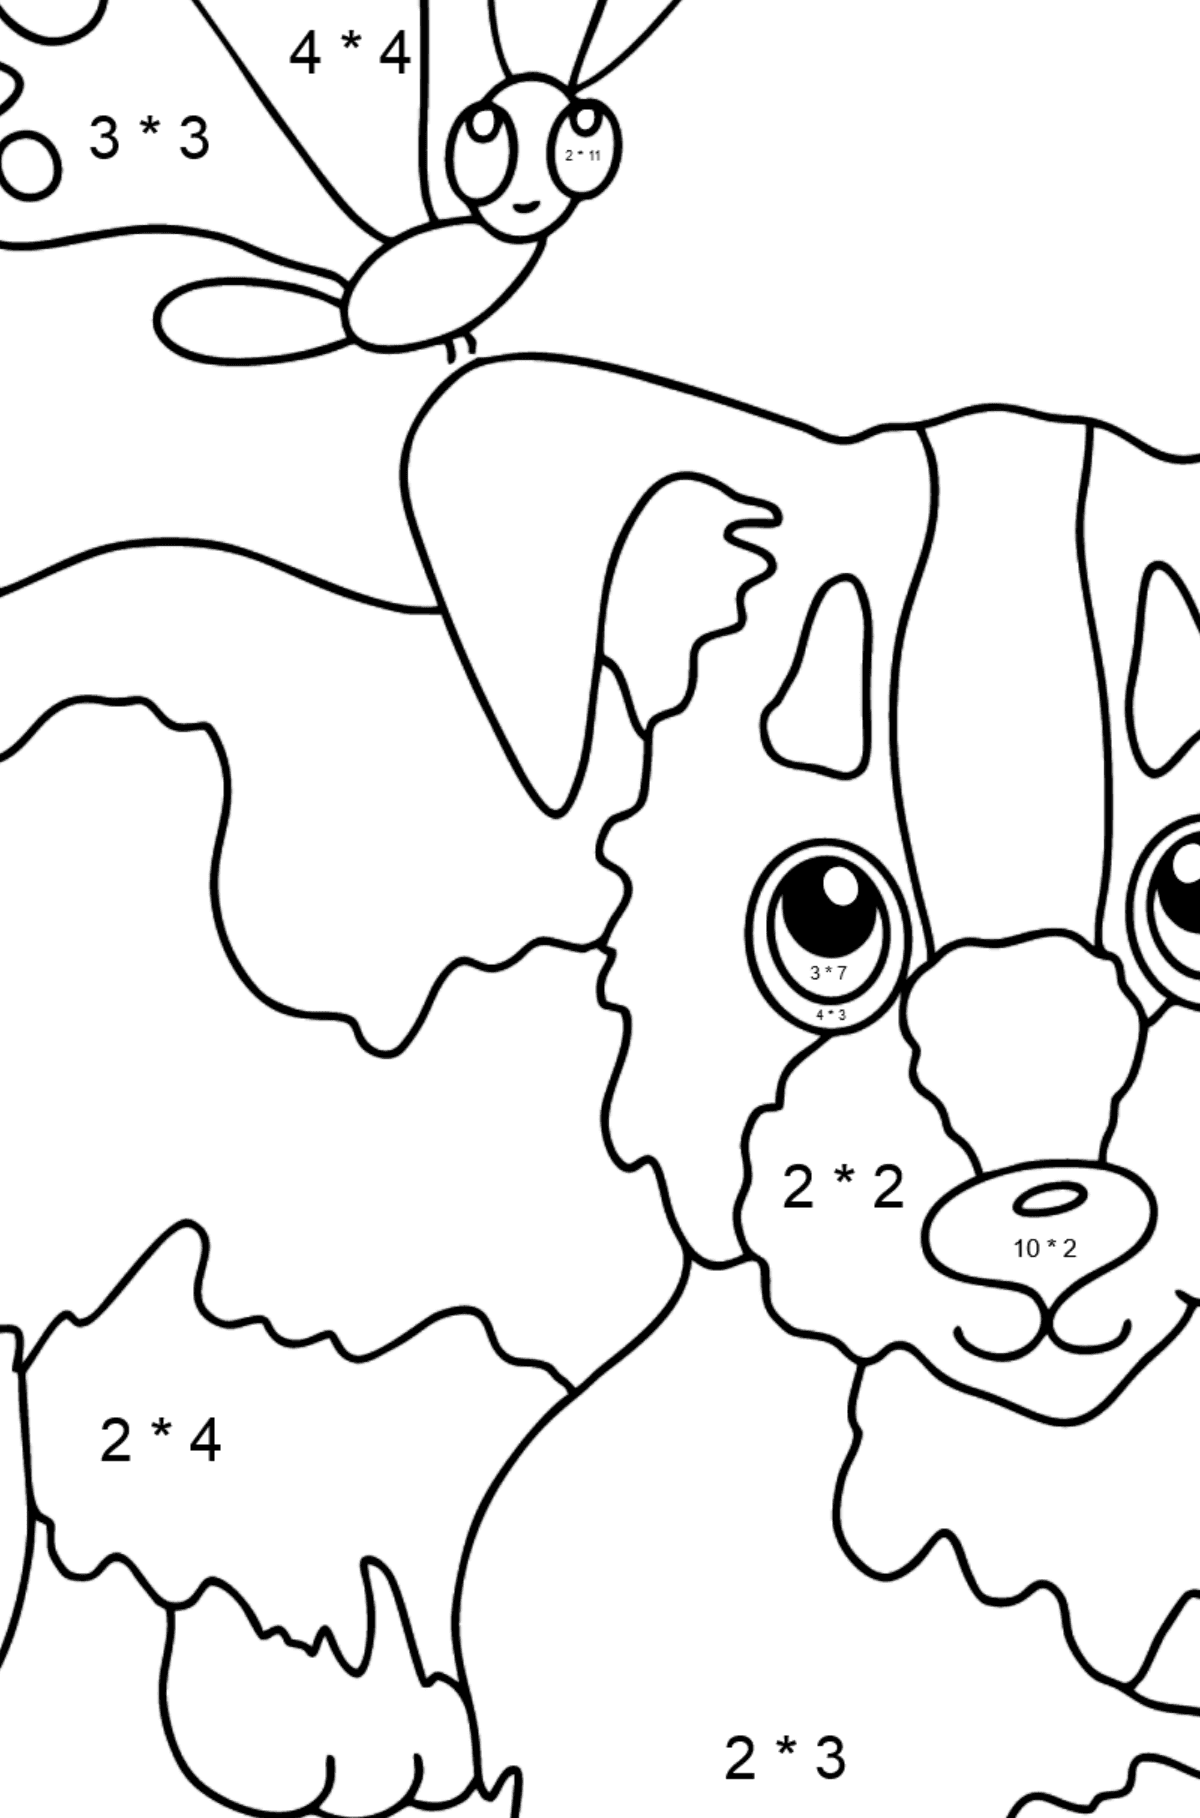 Coloring Page - A Dog is Playing with a Beautiful Butterfly - Math Coloring - Multiplication for Kids